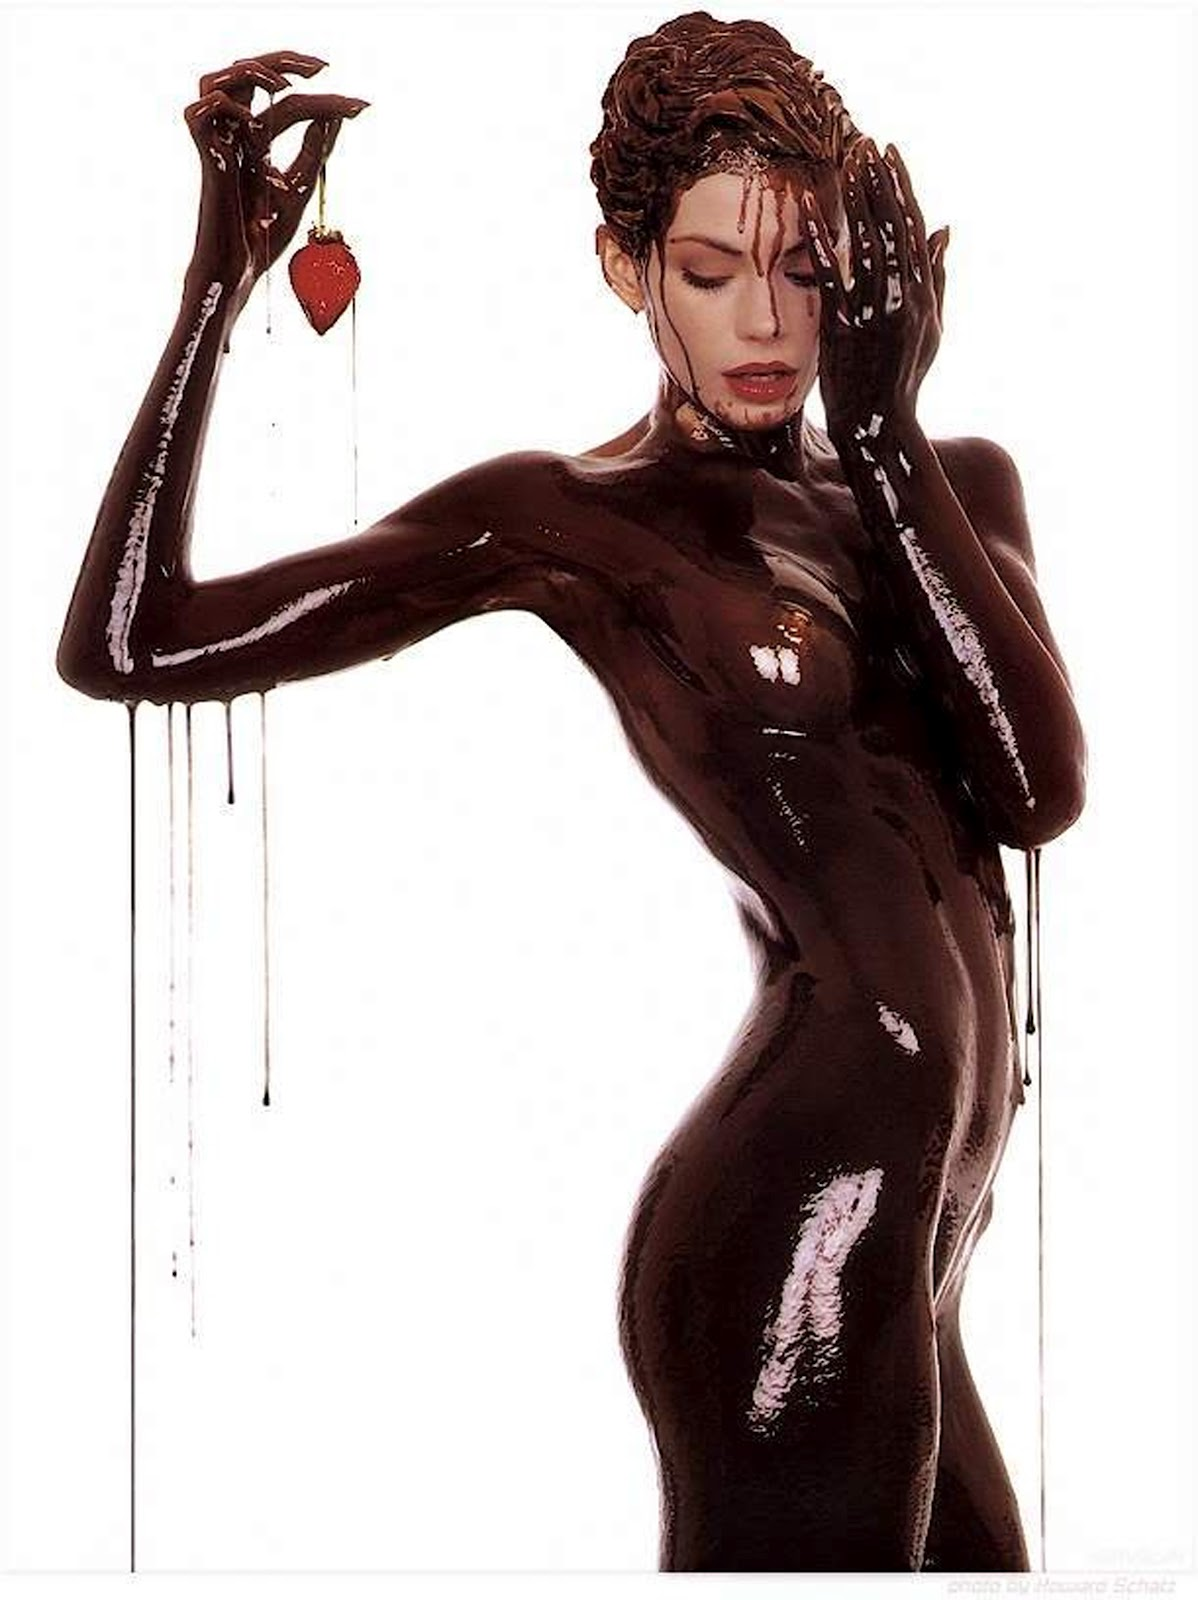 Naked girl covered in chocolate-1336